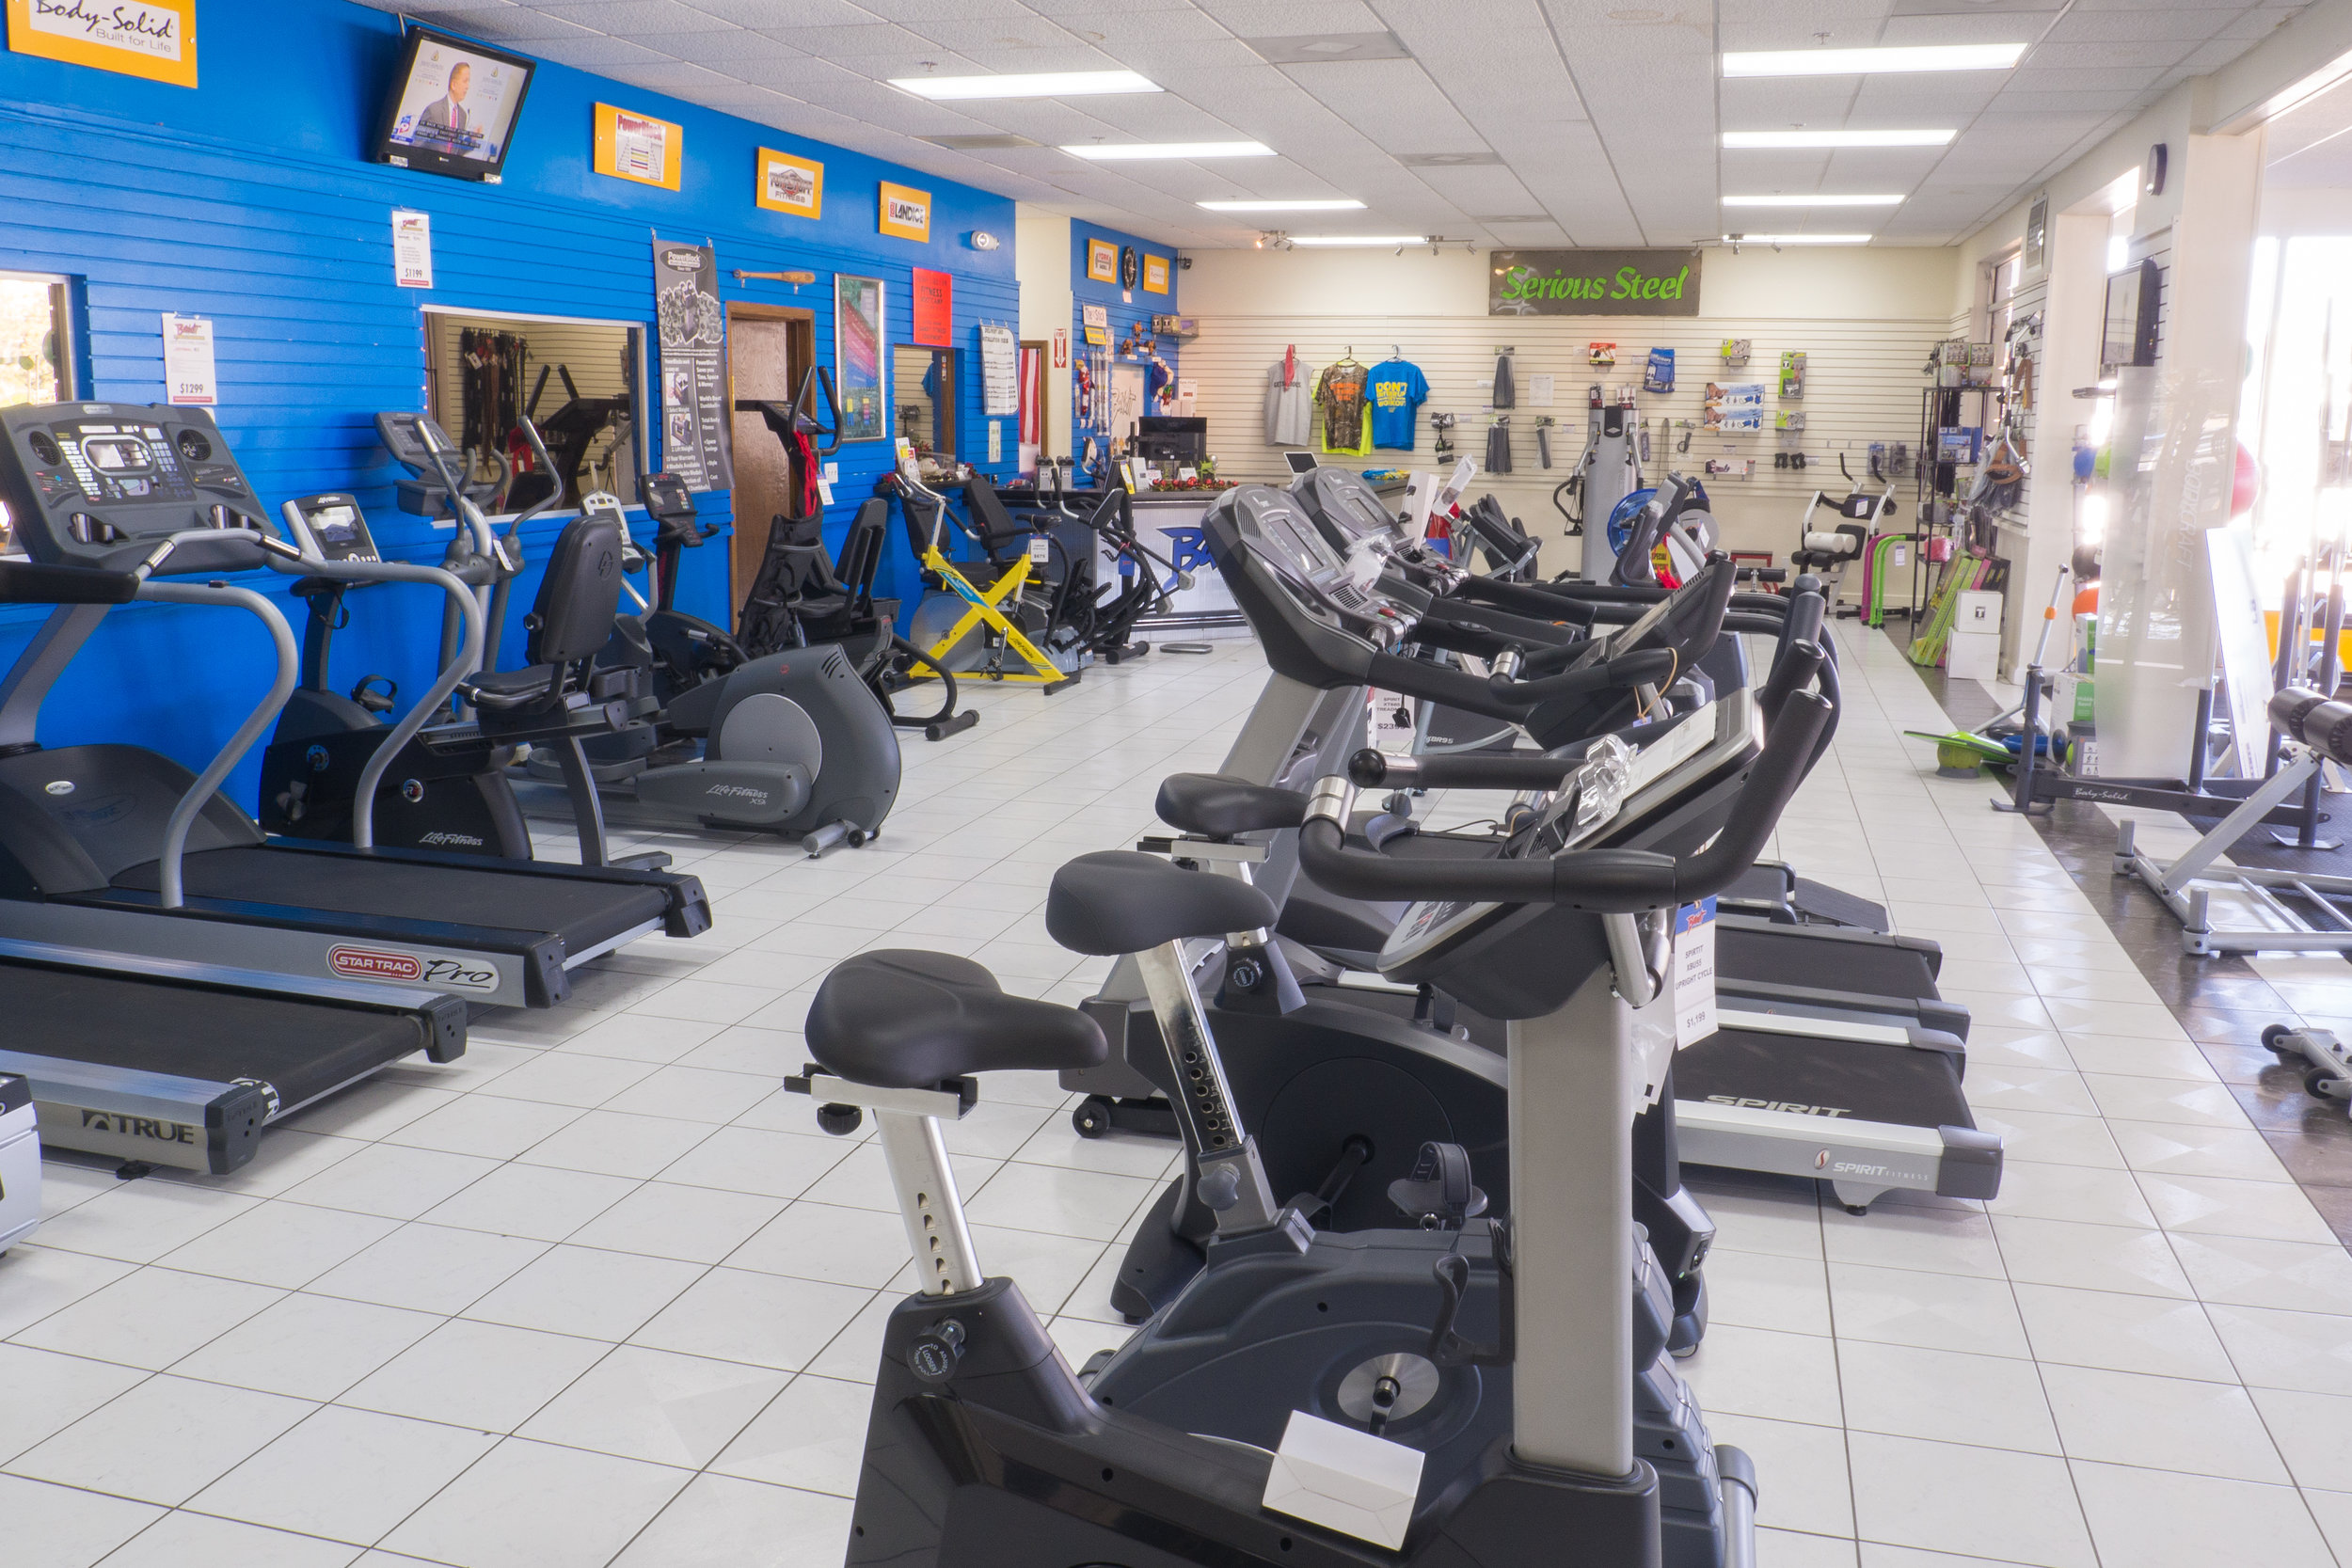 23,000 Square Feet - Our store is jammed full of both new and preowned fitness equipment that you're always welcomed to hop on and try.